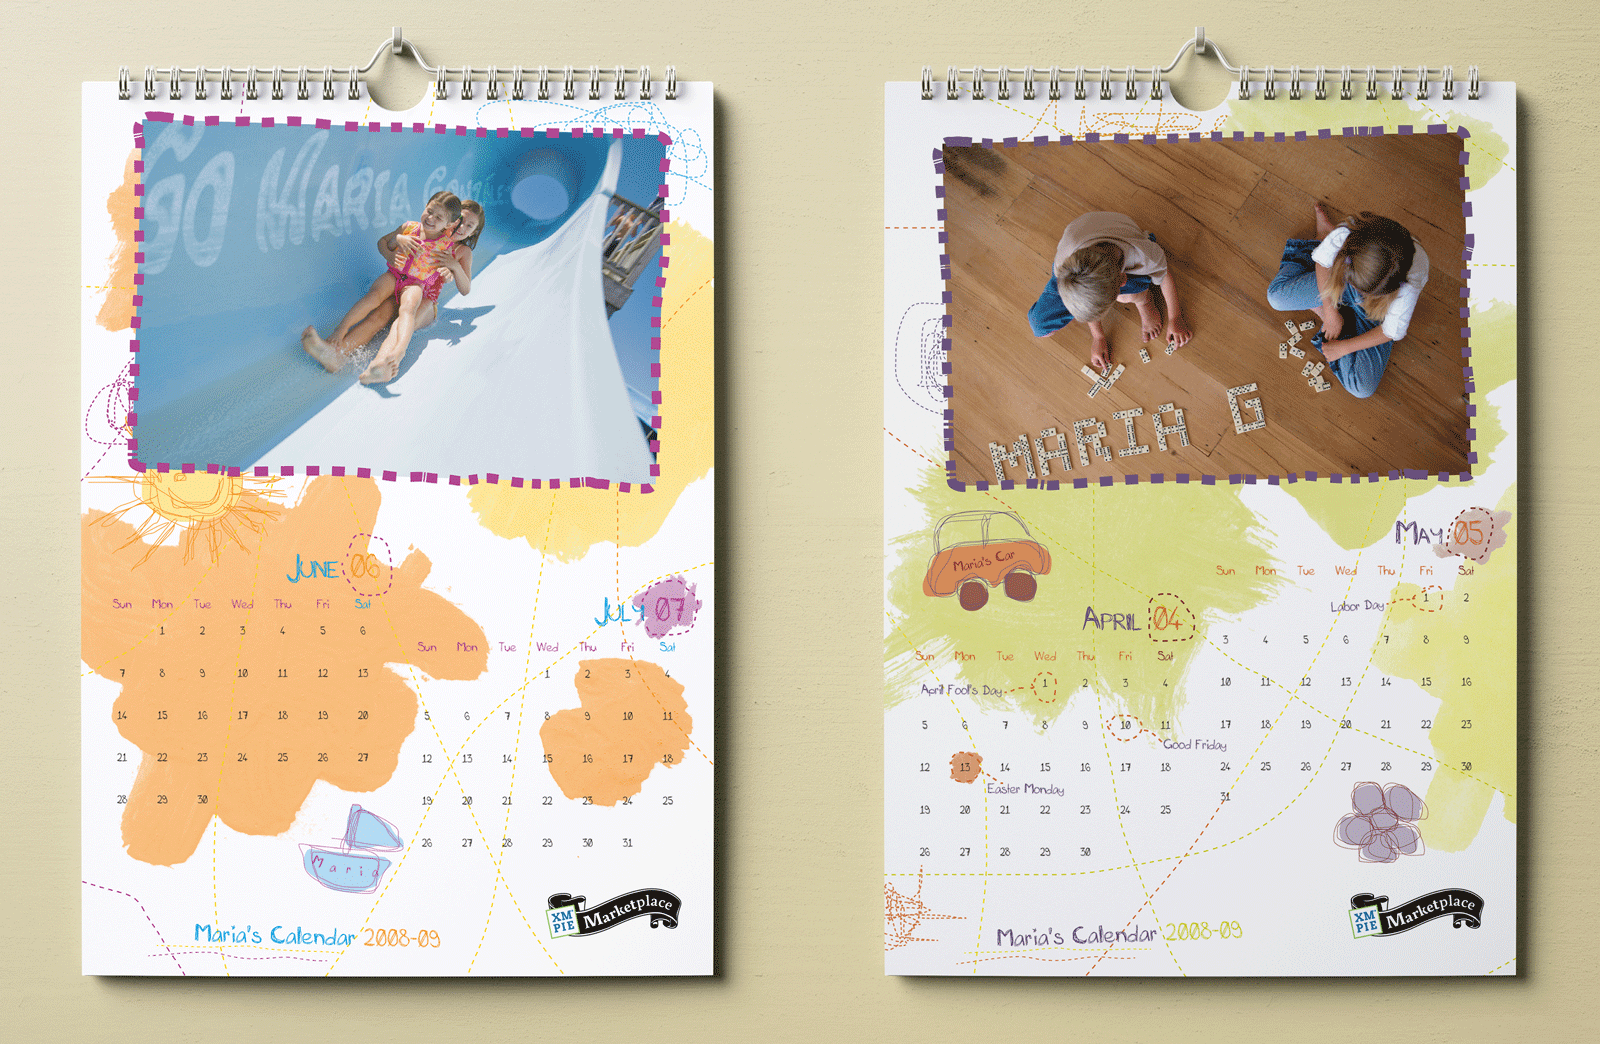 https://bigeyes.co.il/wp-content/uploads/2019/07/kids-calendar-4.png